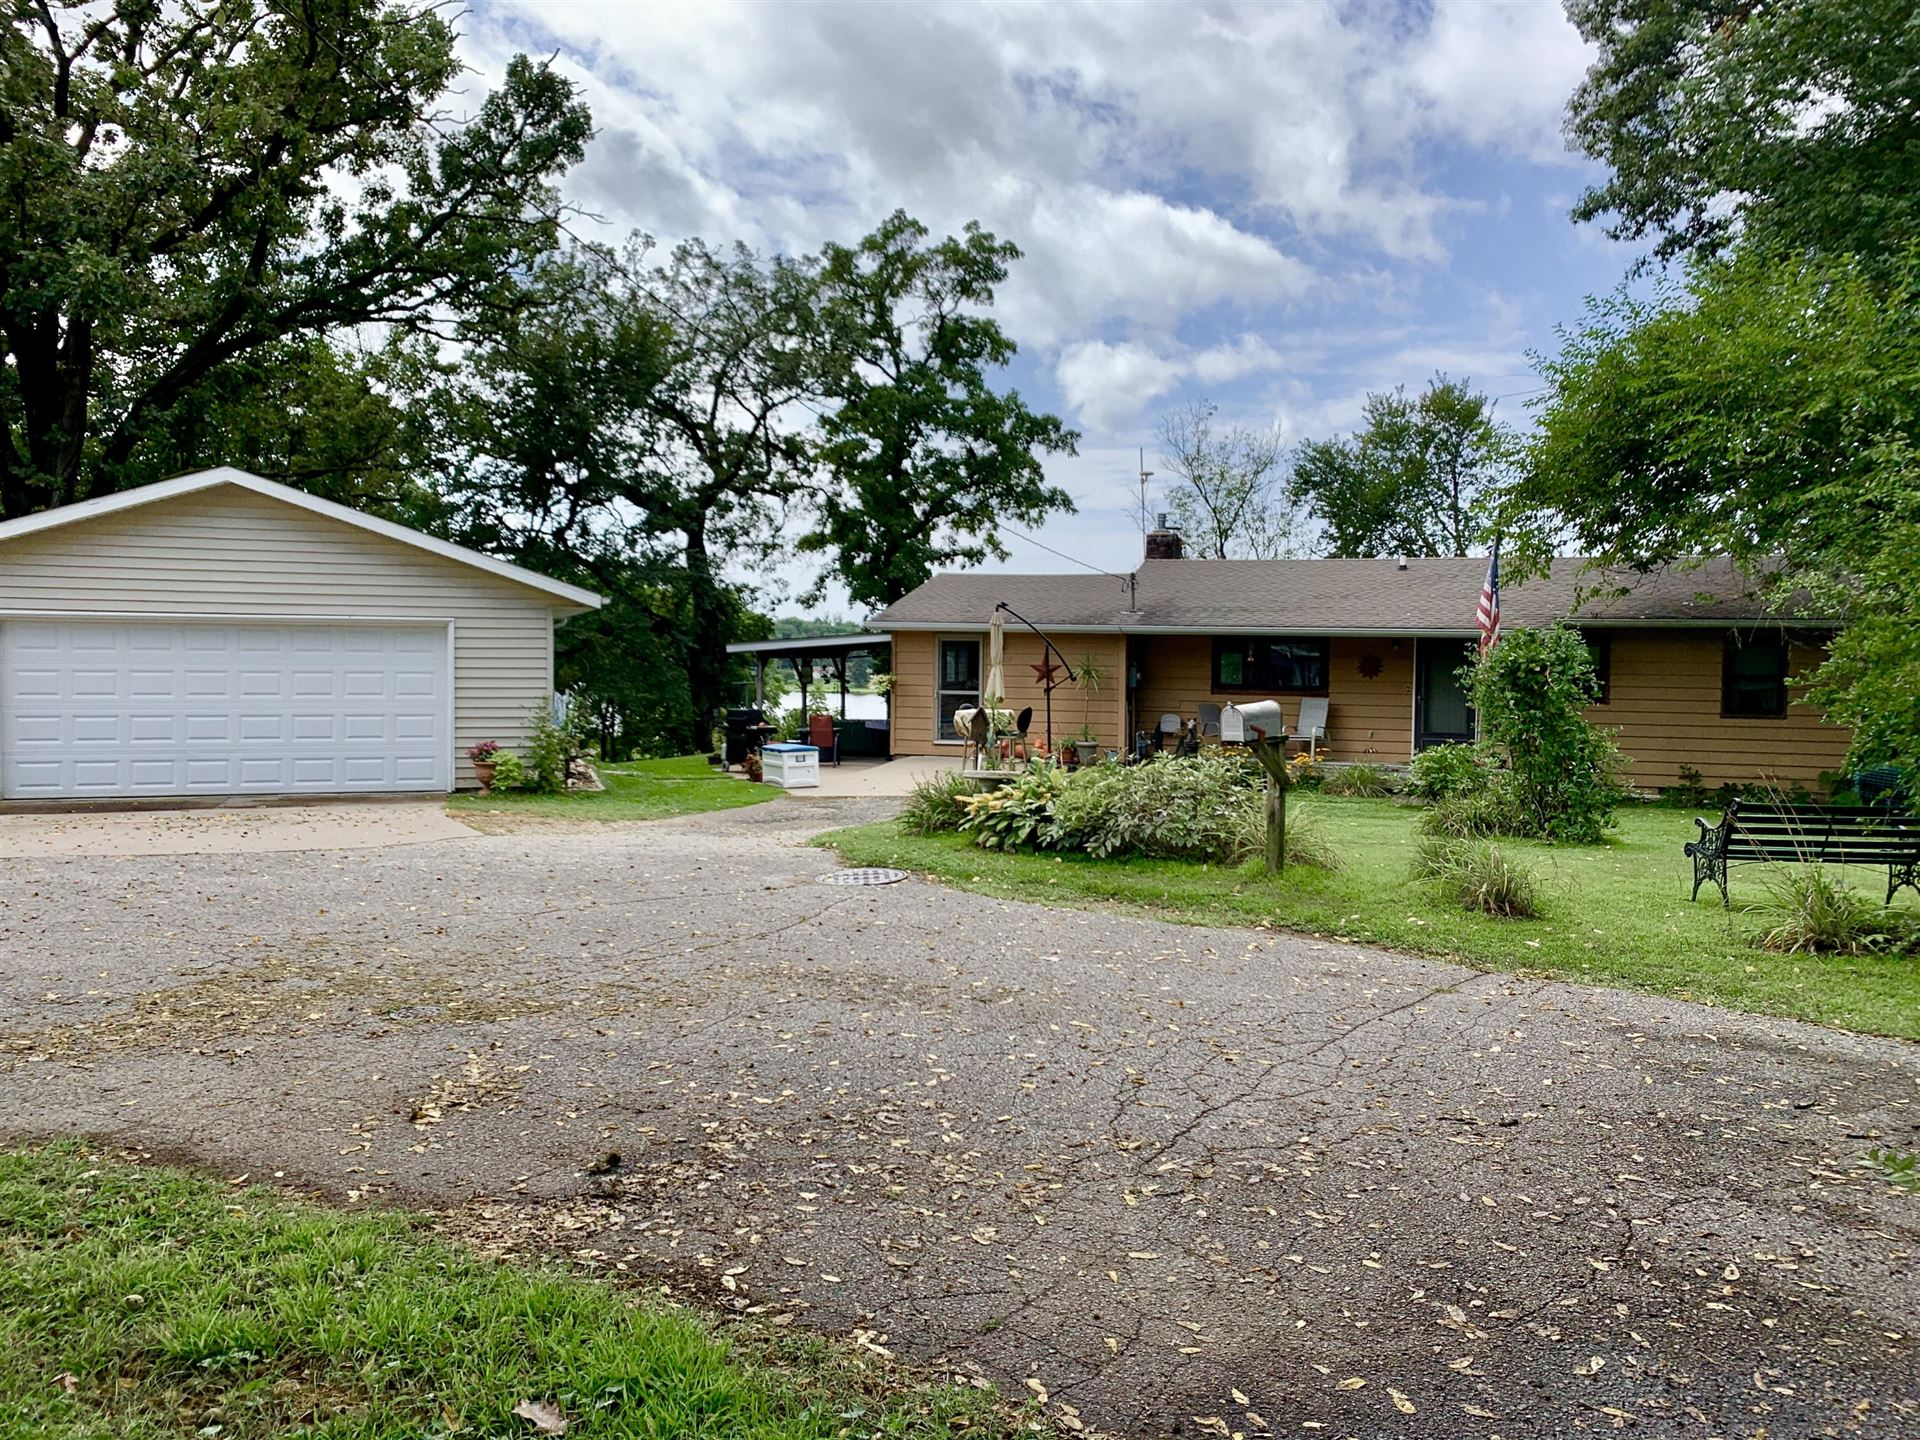 17407 Cottage Ave, Galesville, WI 54630 - MLS#: 1707627